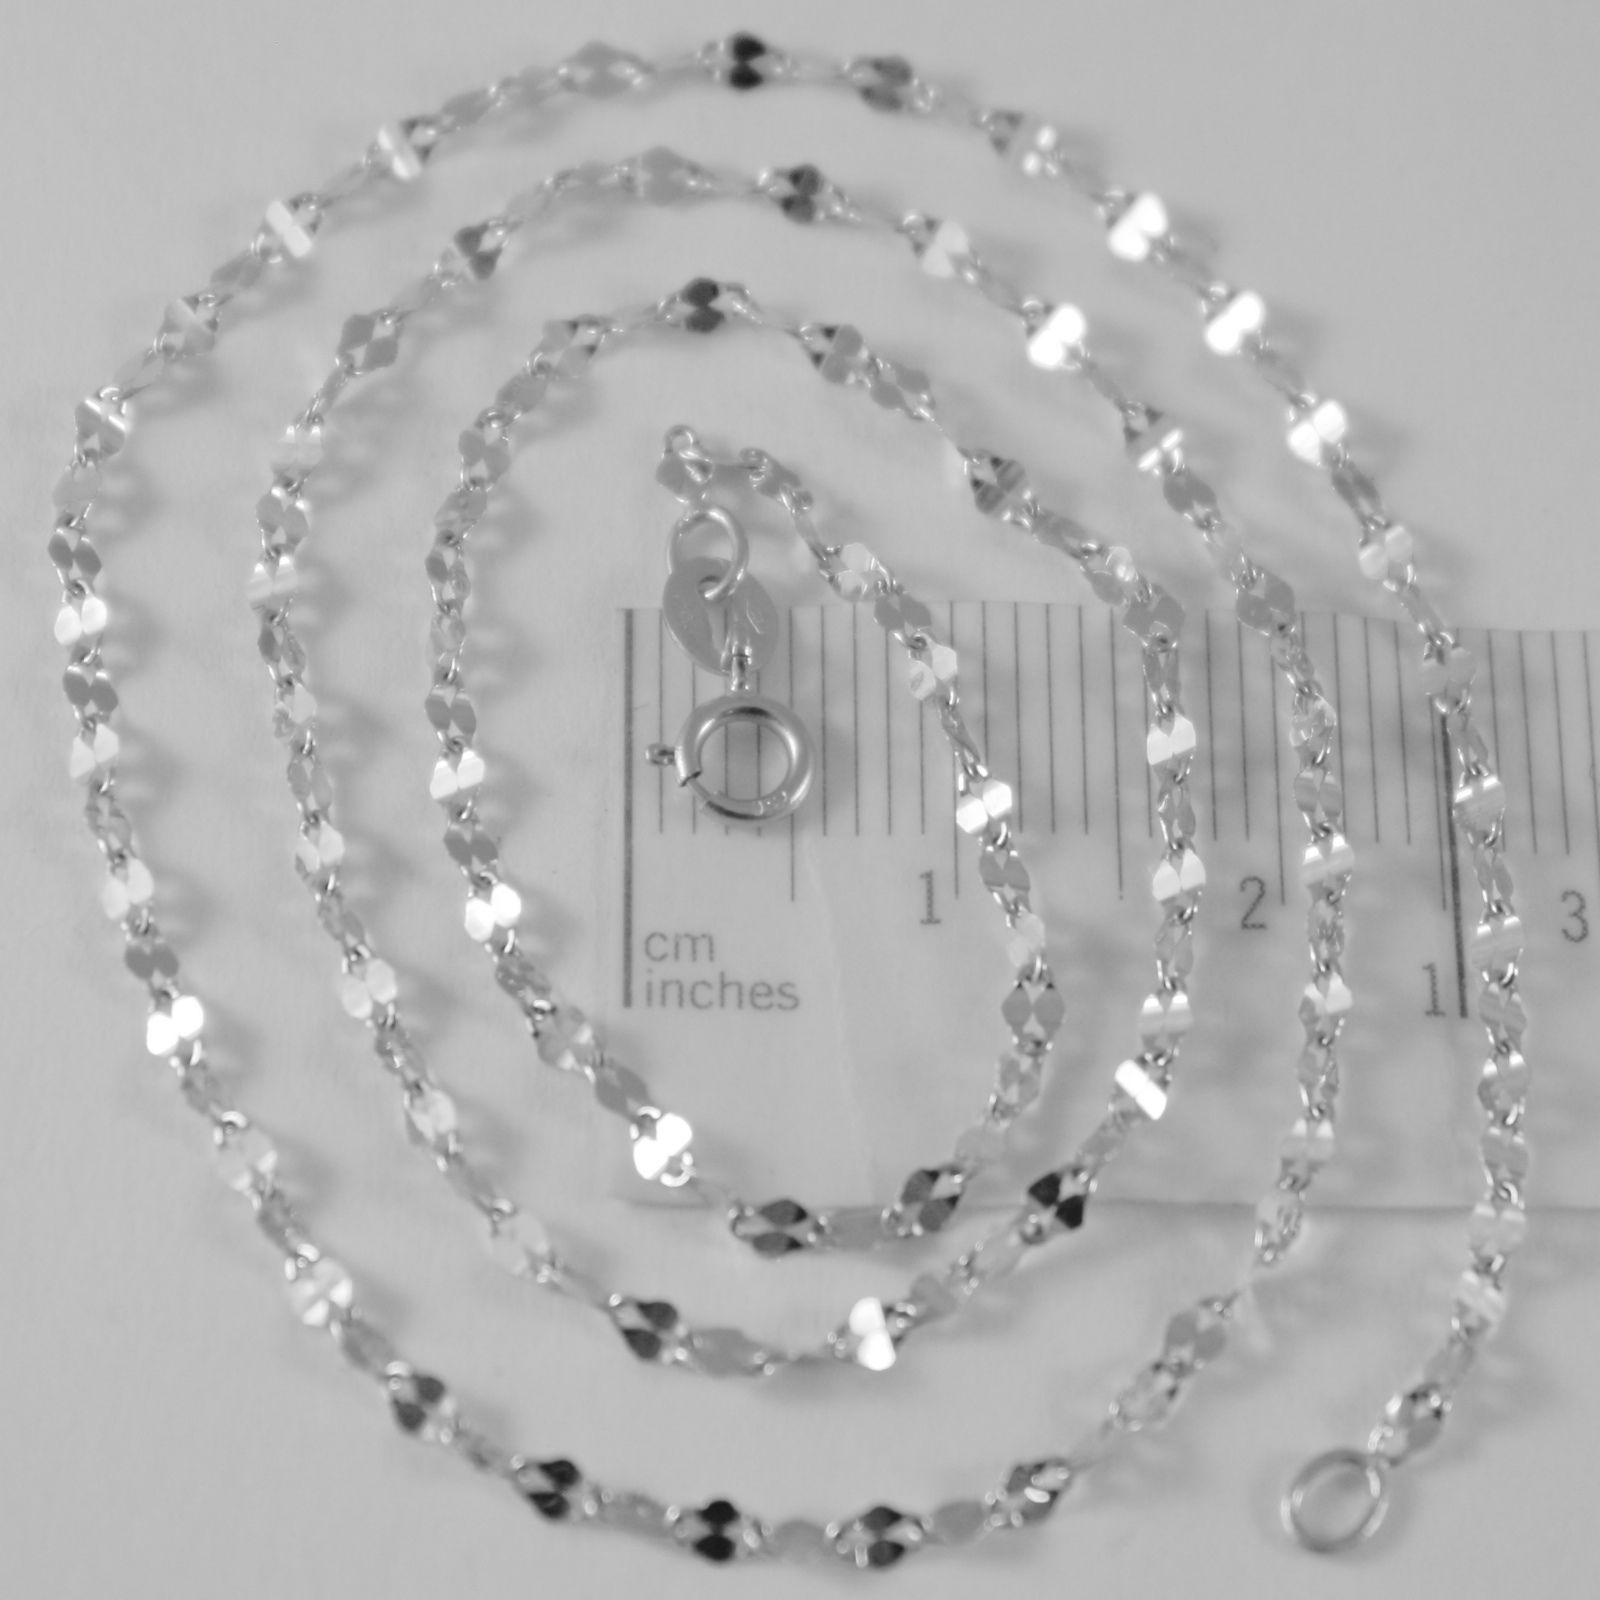 SOLID 18K WHITE GOLD FLAT BRIGHT KITE CHAIN 18 INCHES, 2.2 MM MADE IN ITALY